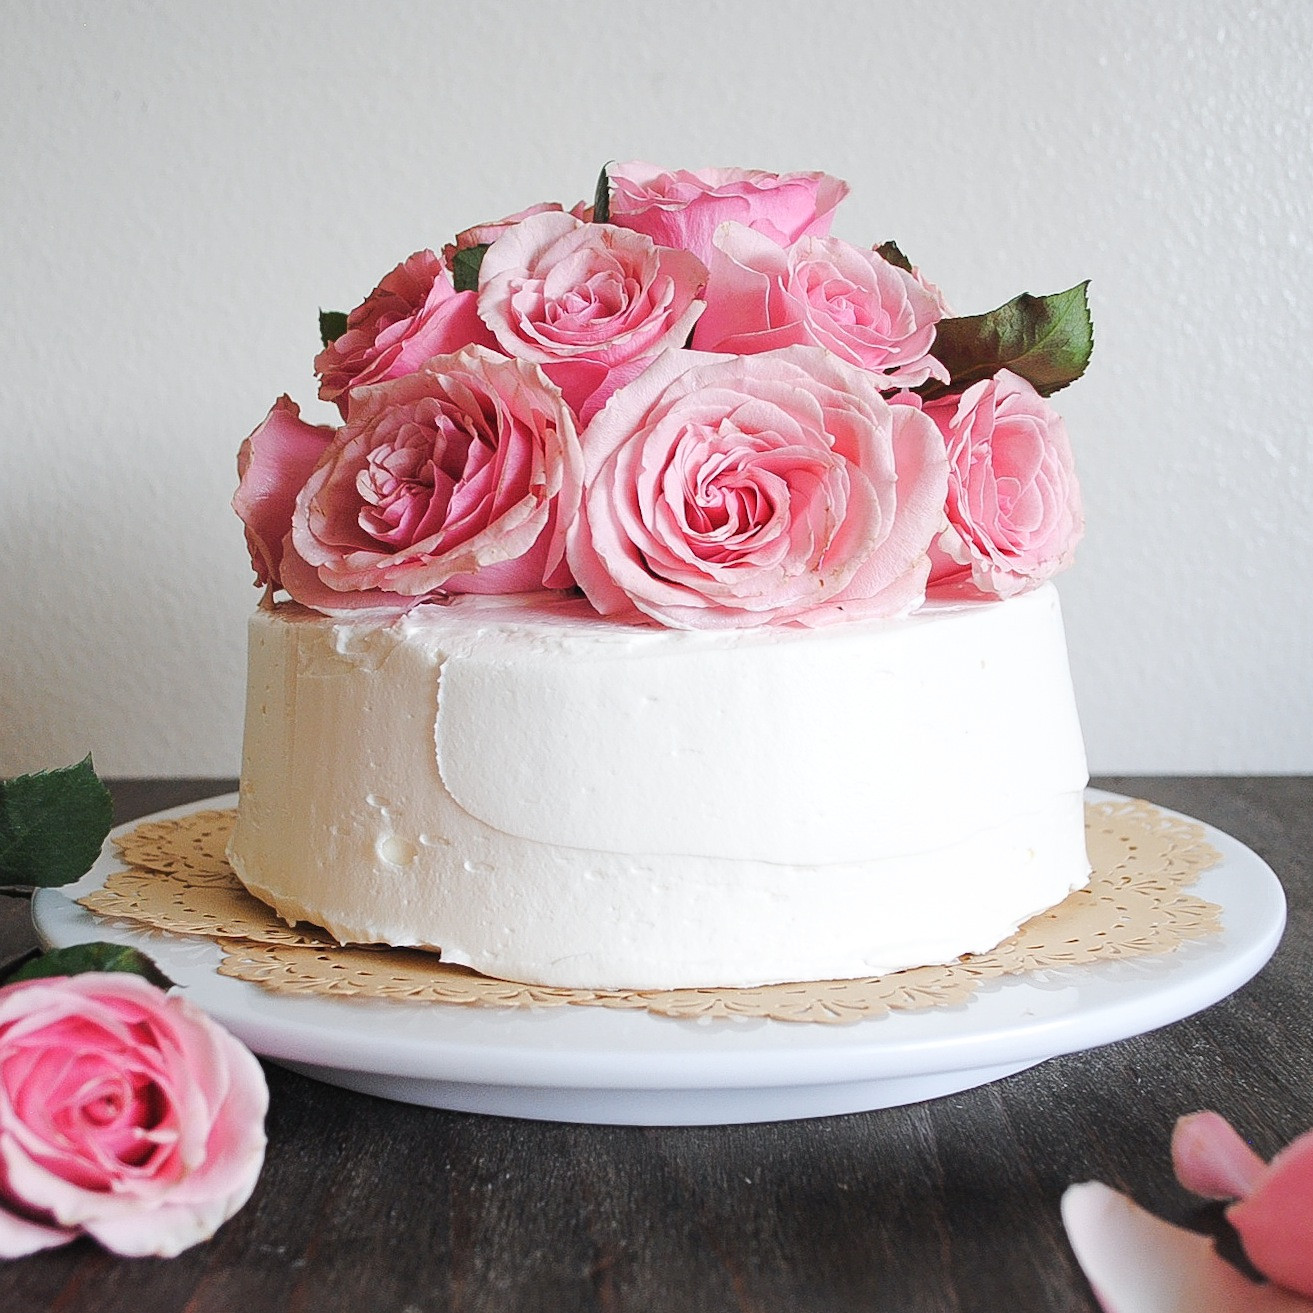 Best ideas about Rose Birthday Cake . Save or Pin Tayberry Chocolate Cake with Fresh Cut Roses Now.